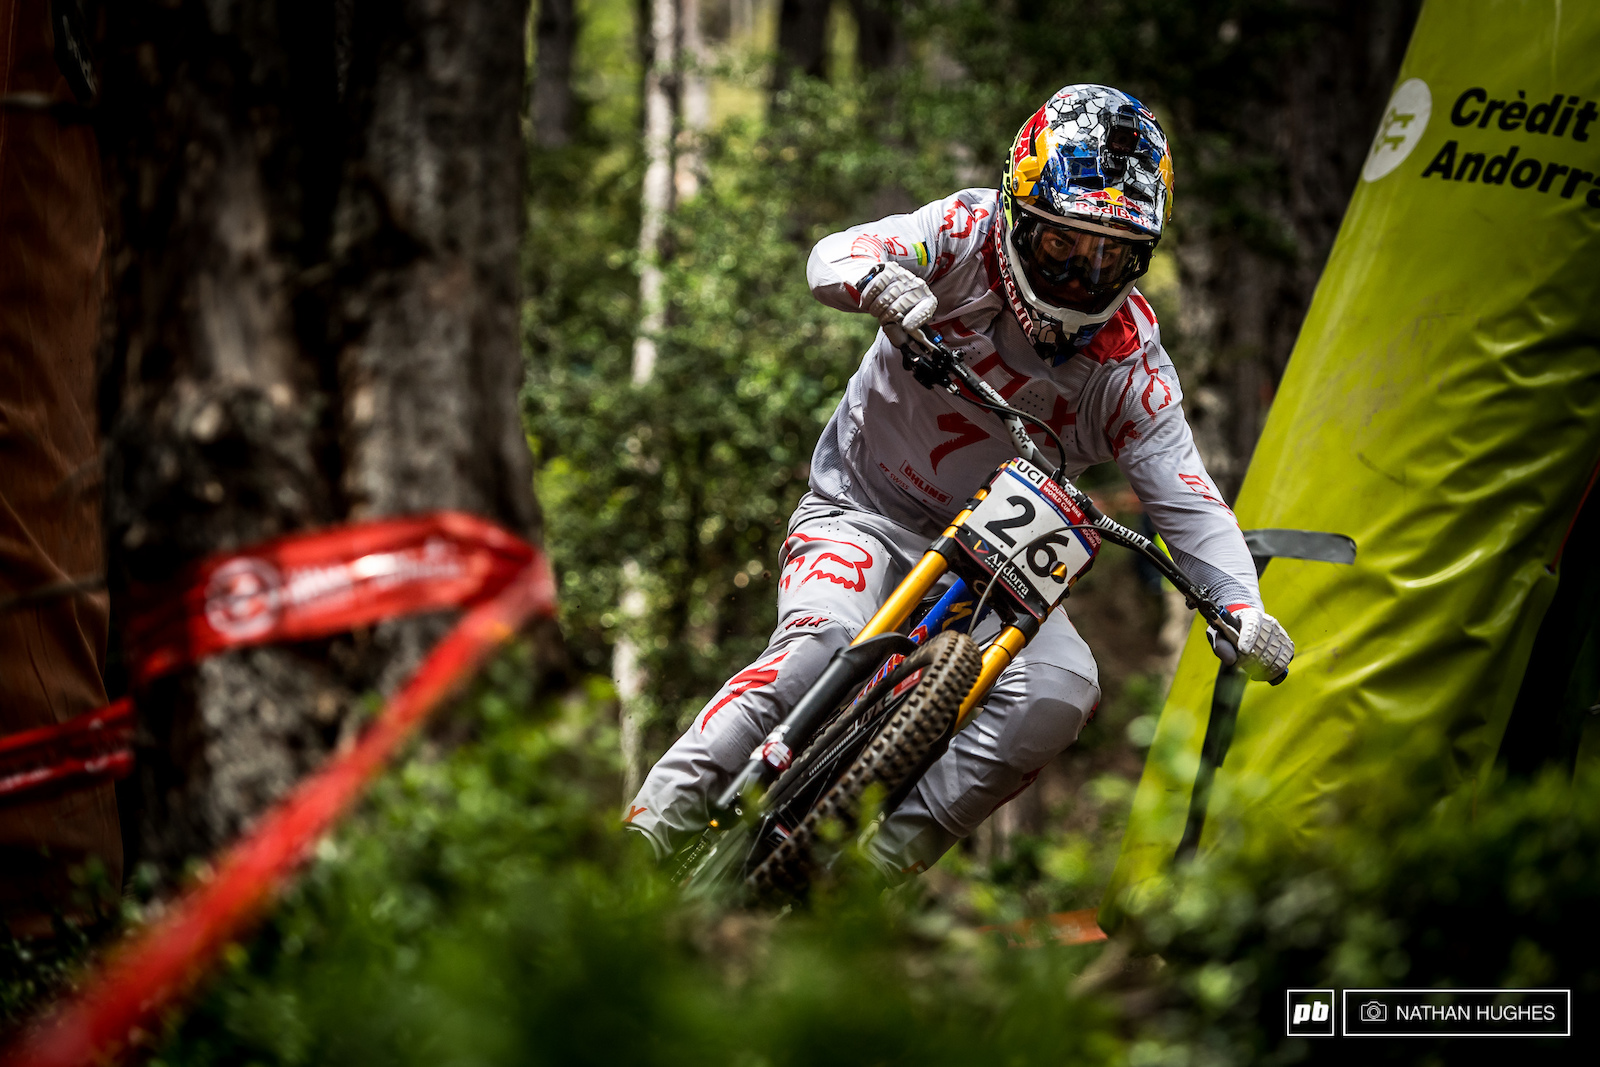 Not the wonder run of World Champs 2015 for Loic Bruni but a banger none the less...